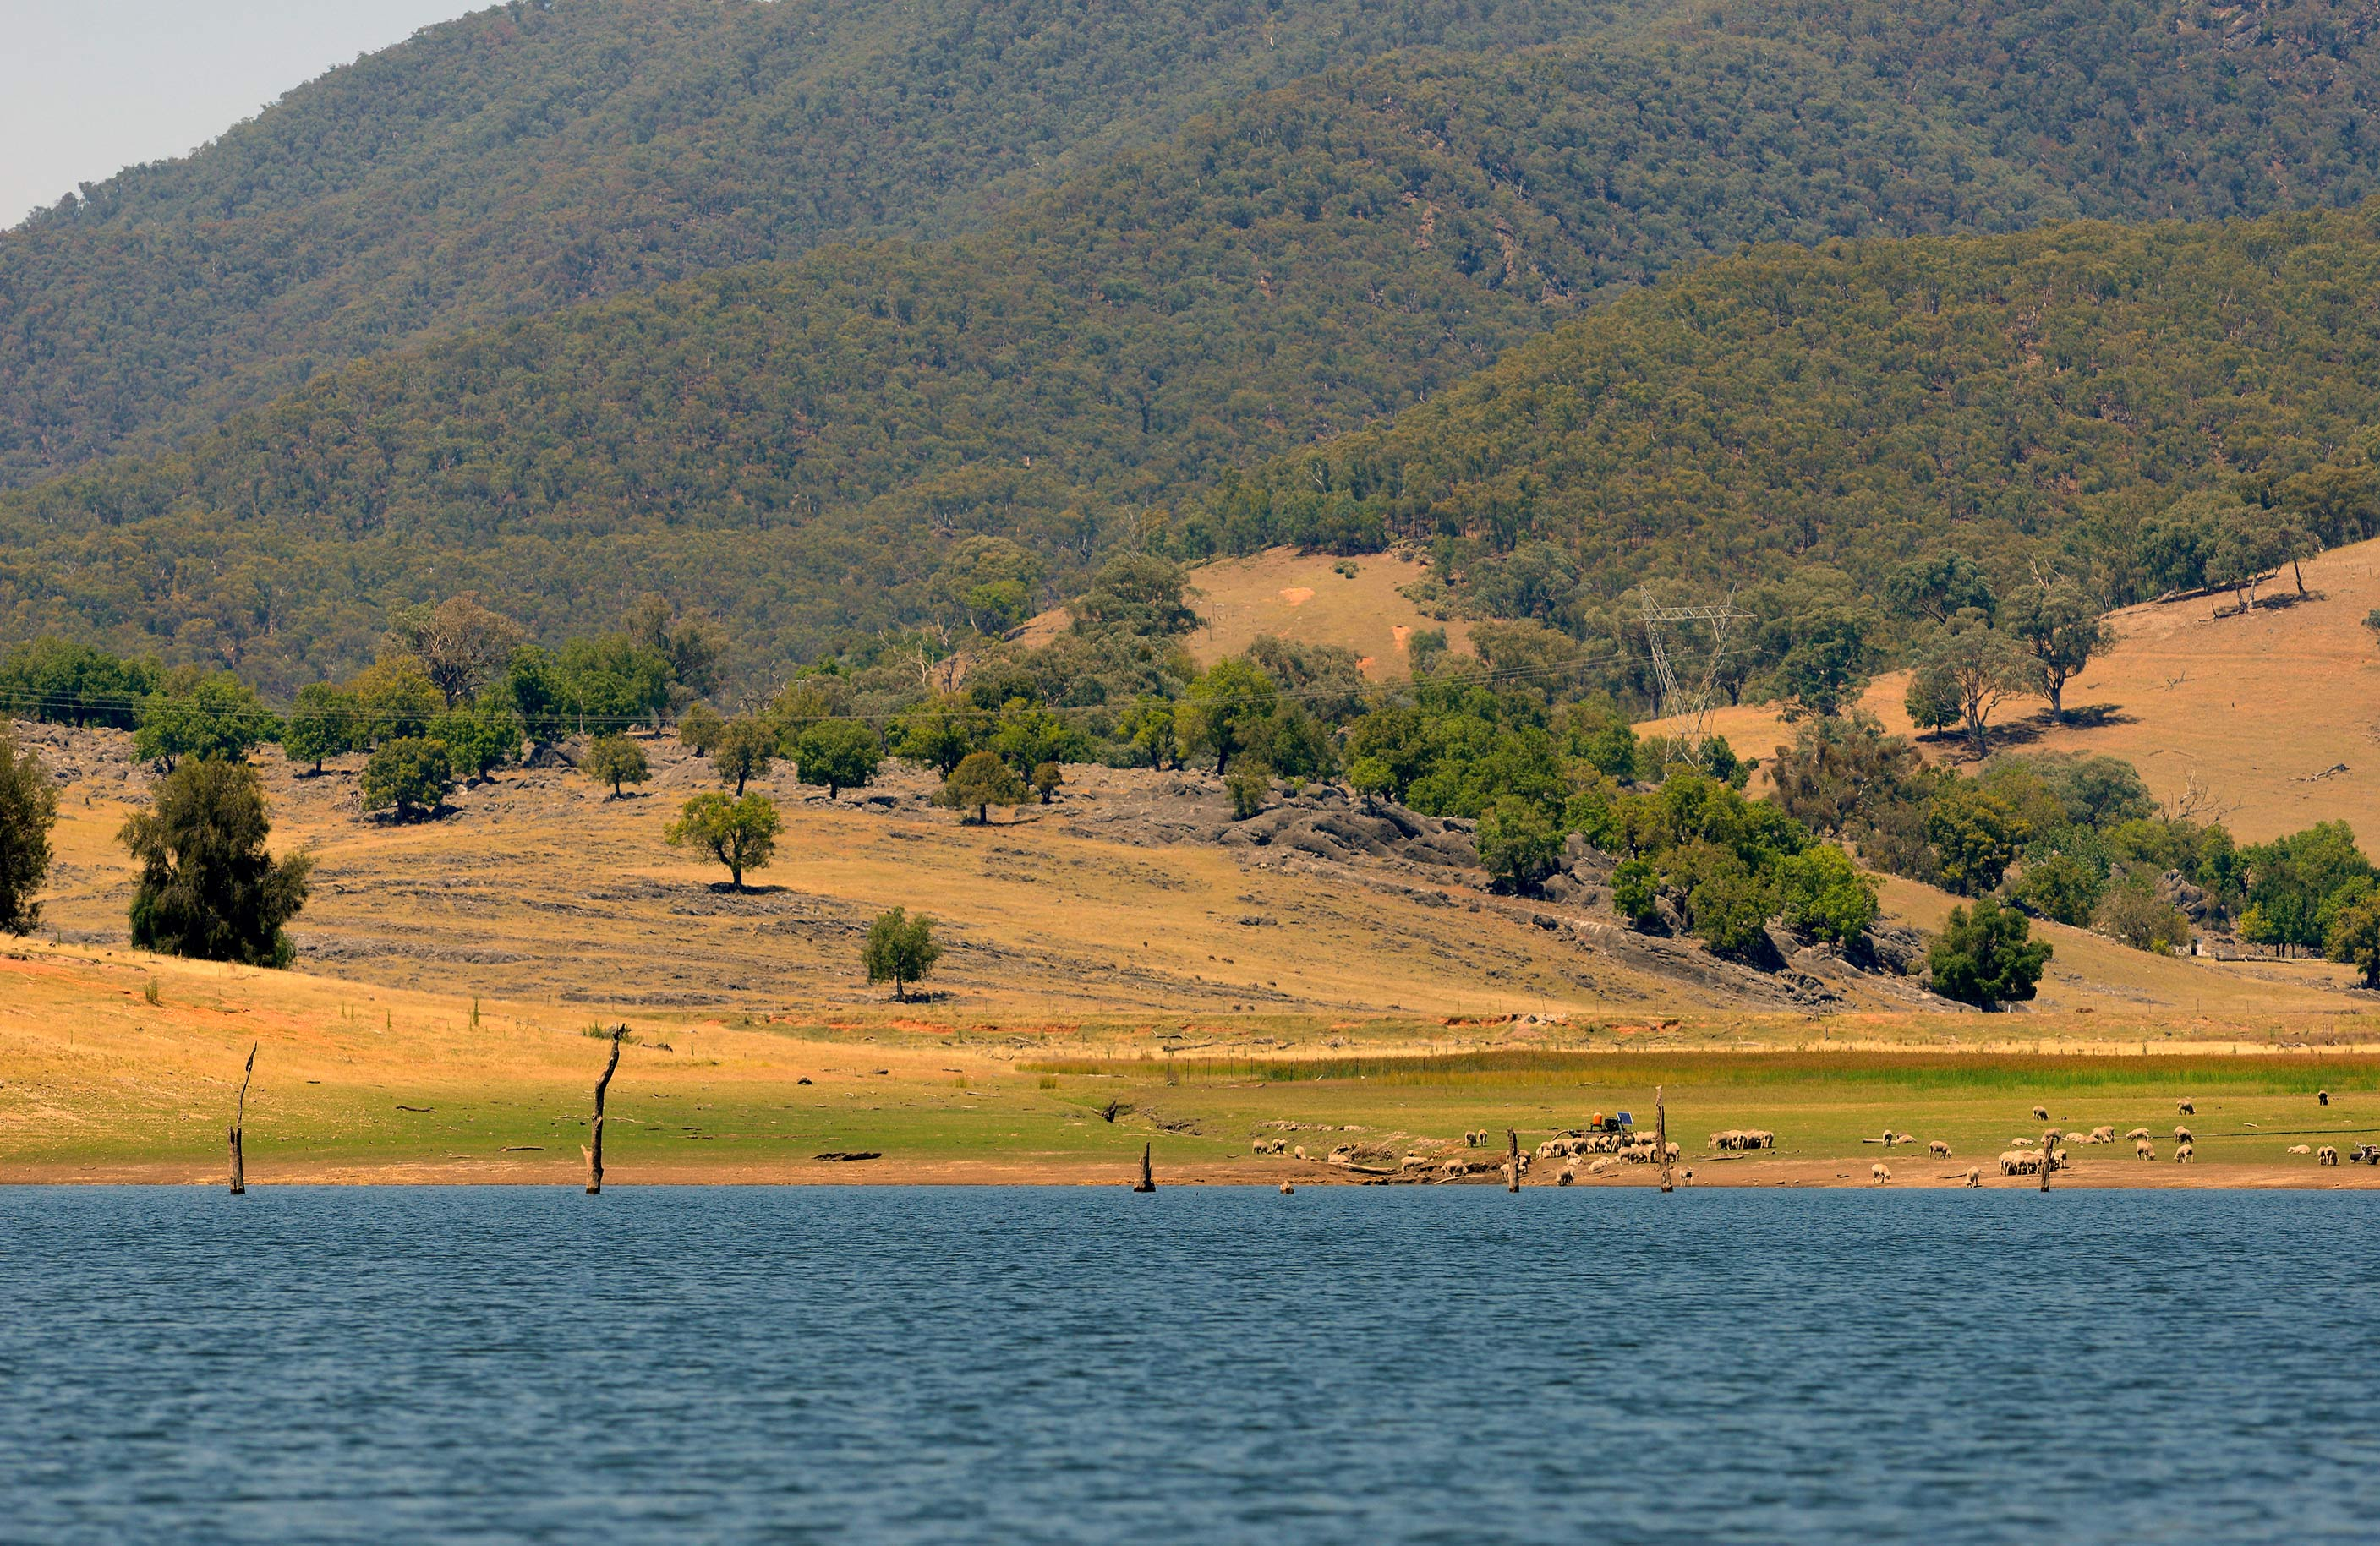 Shallower bays like this — especially if they have a soak or inflow at the back — are prime places to hunt for carp.